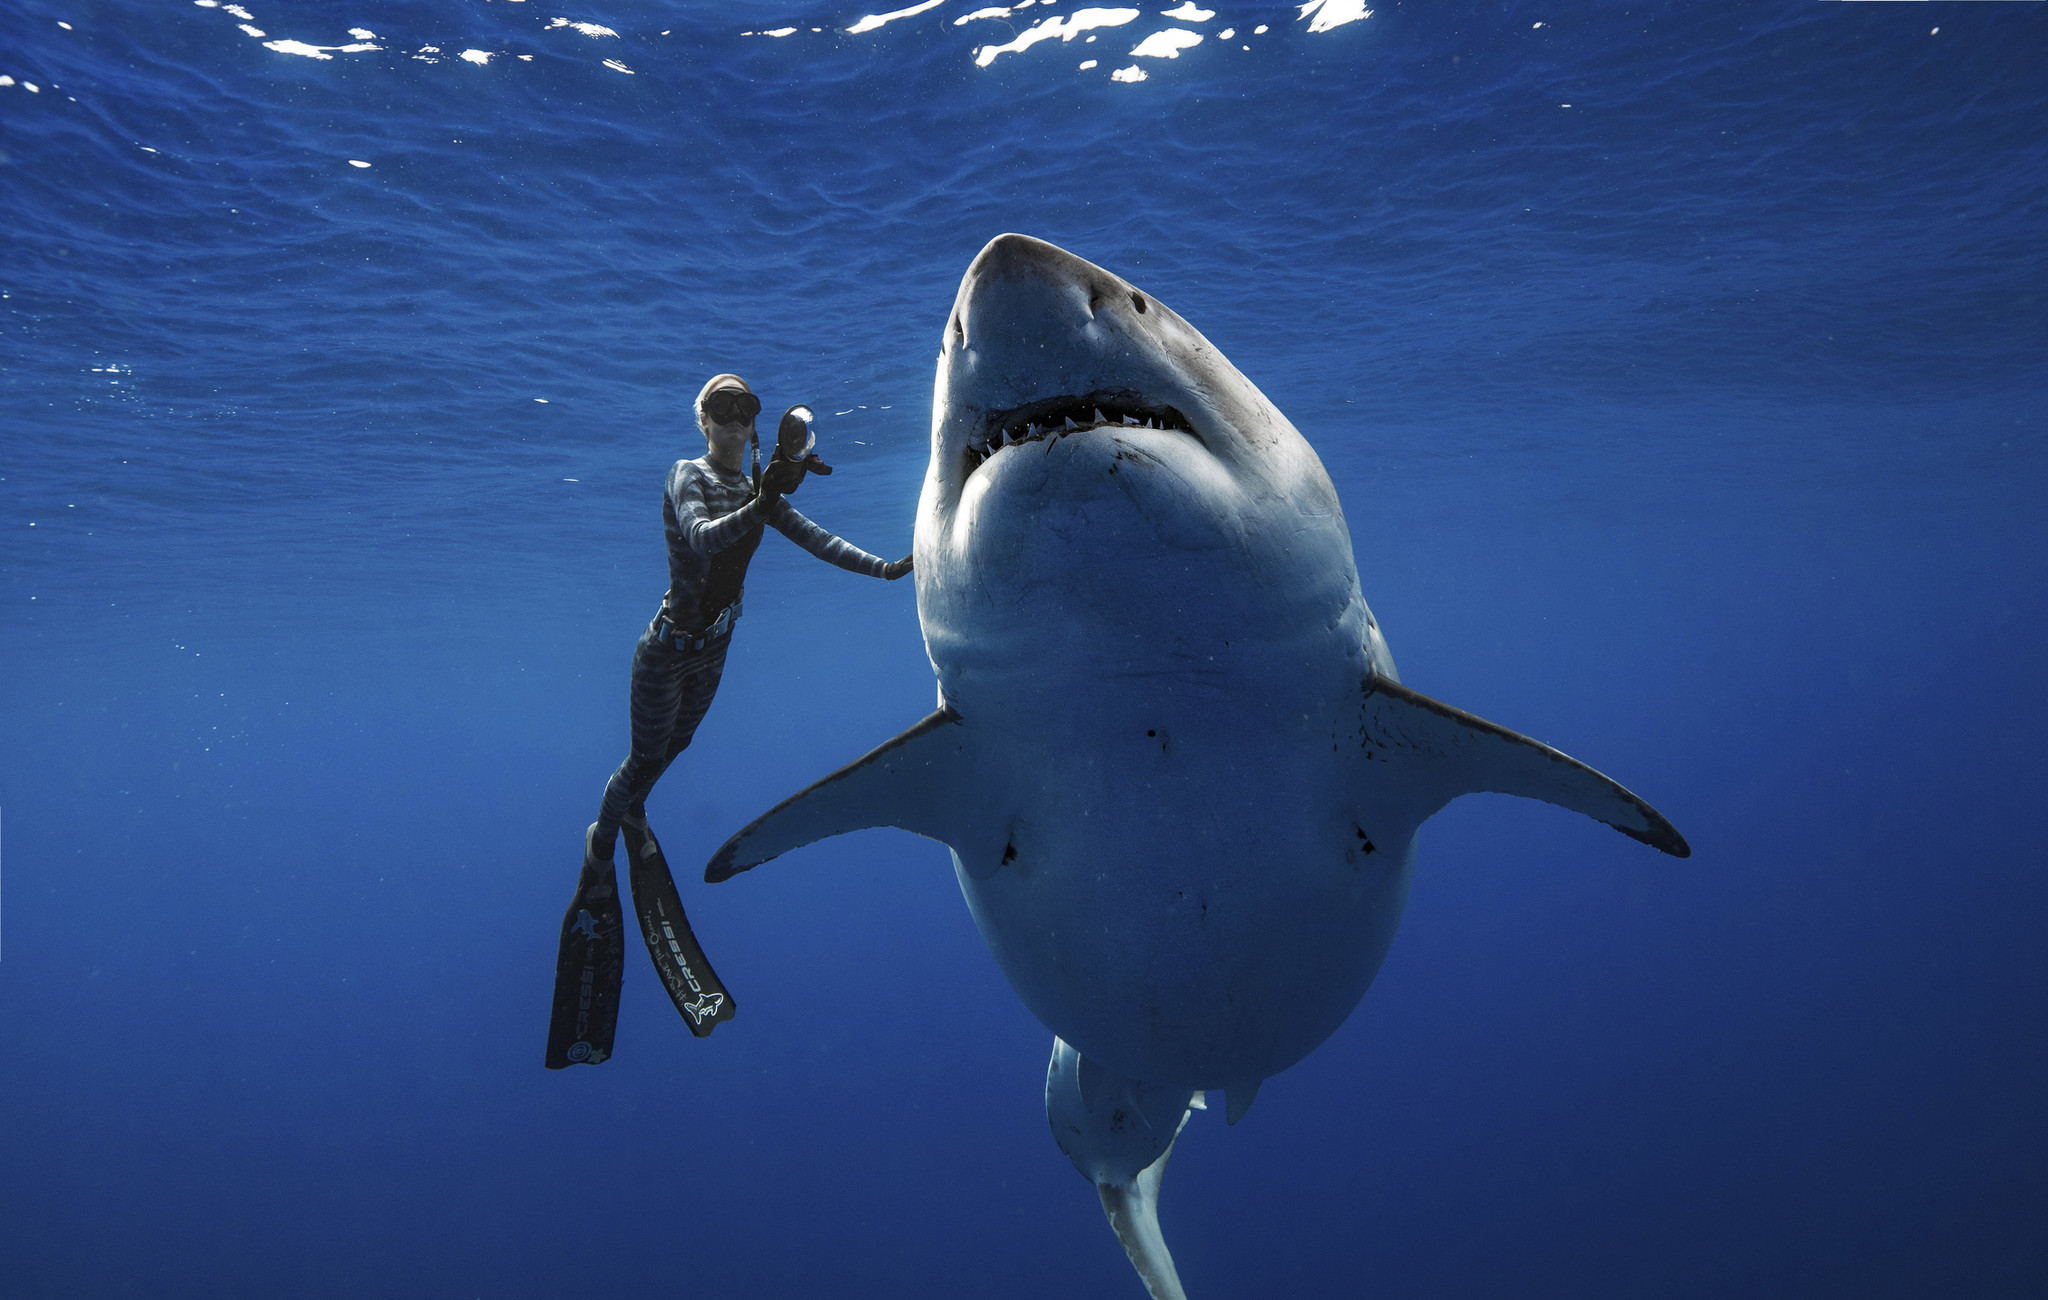 Researchers come face-to-face with what could be one of the largest great white sharks ever recorded